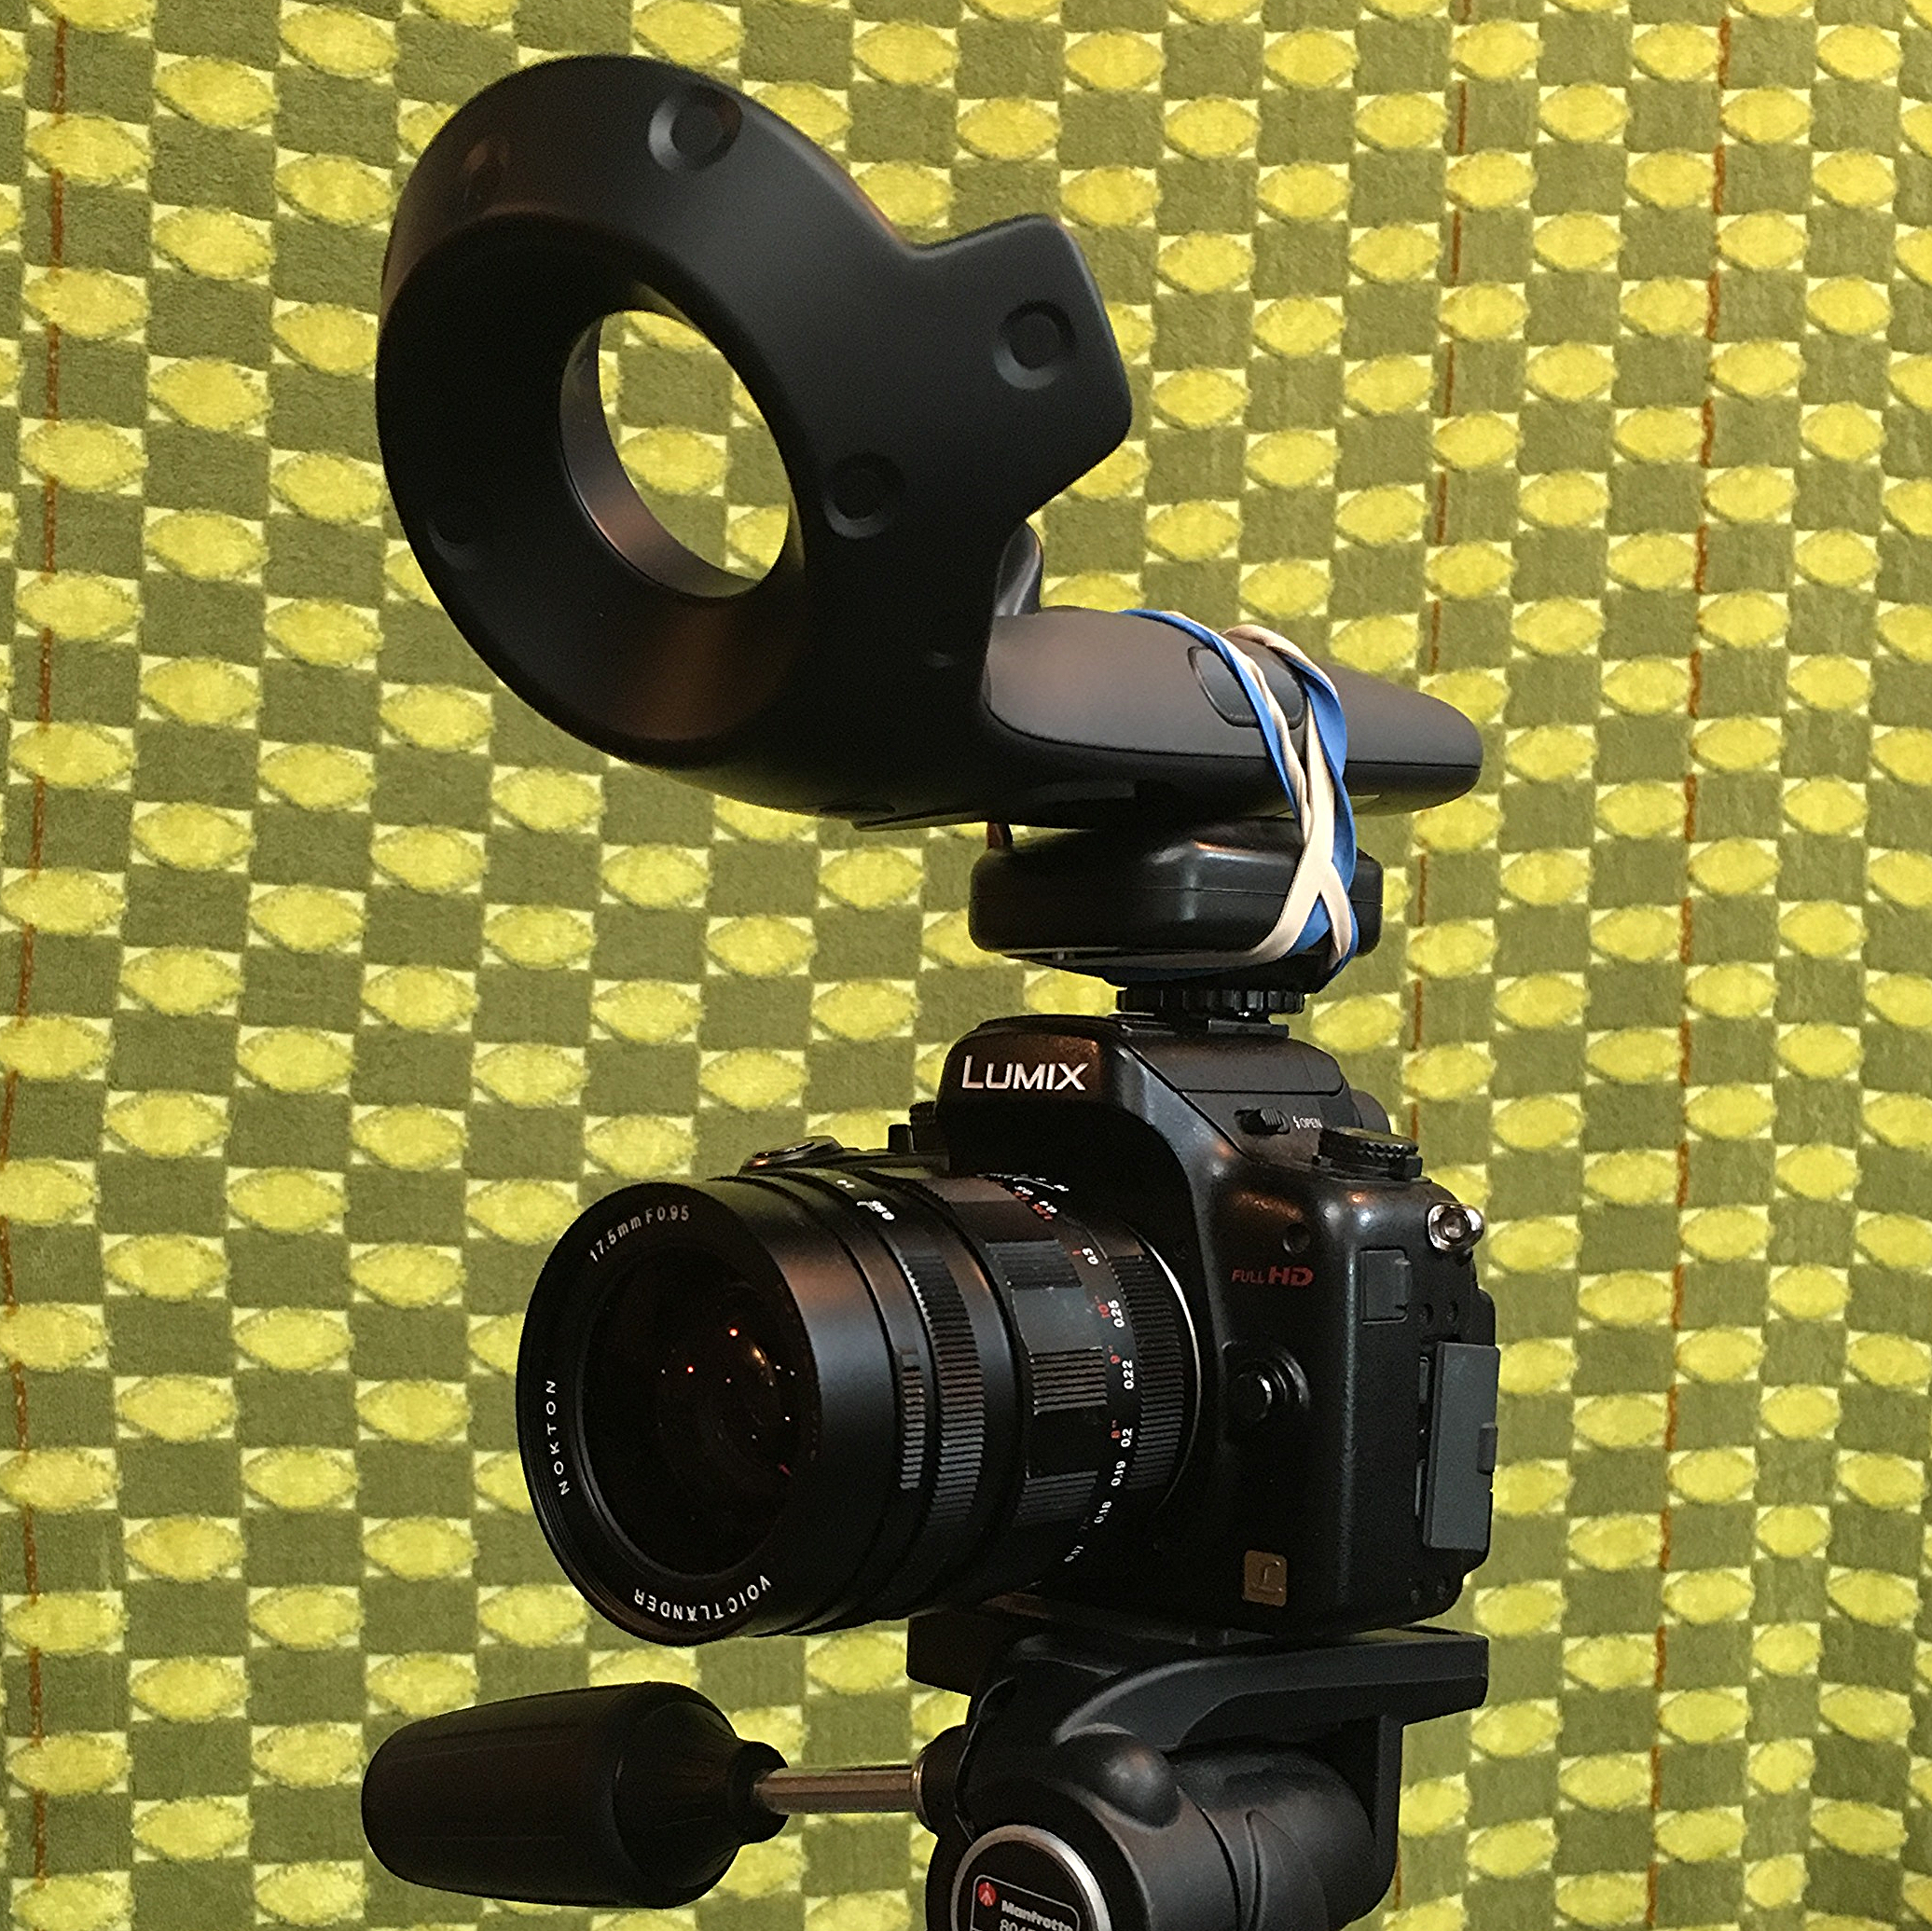 One of the first tests mounting the third VIVE controller inverted on top of my Panasonic GH2. This test was not rigid enough and inverting the controller wasn't ideal.